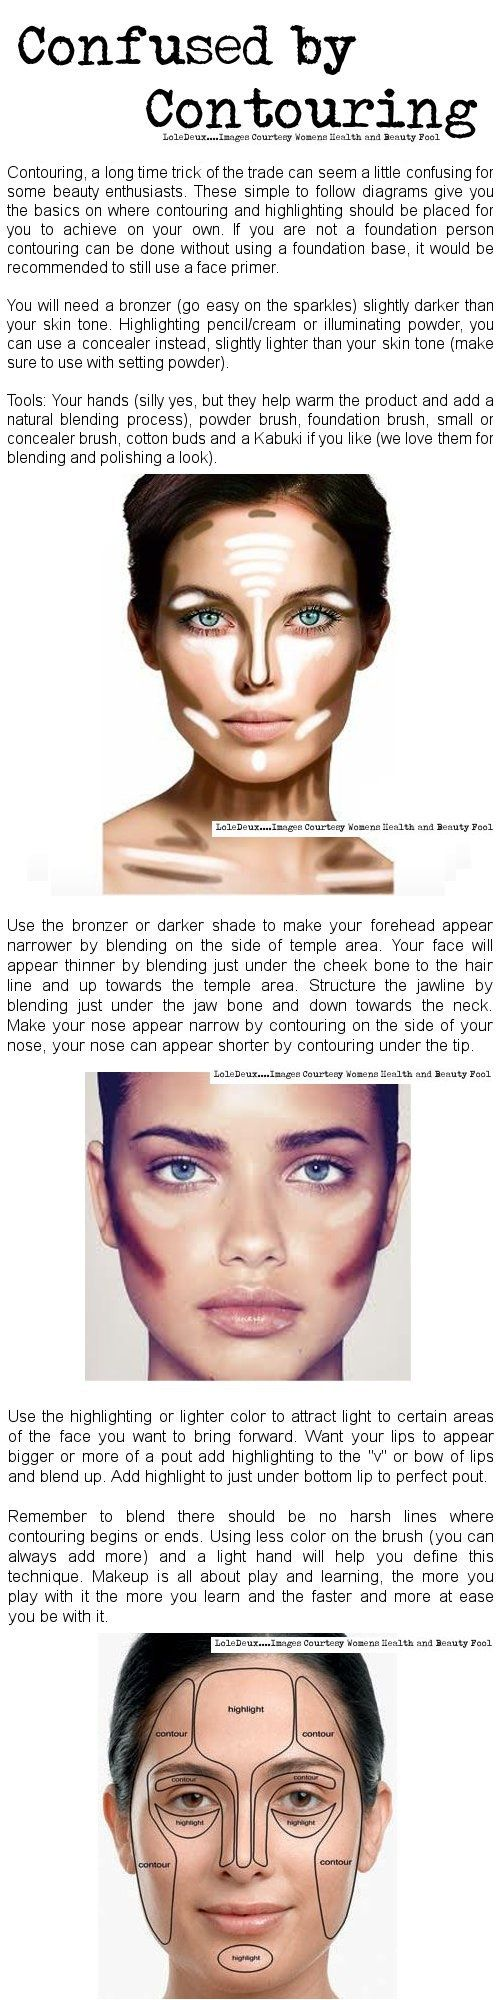 Confused about contouring? Well not anymore.